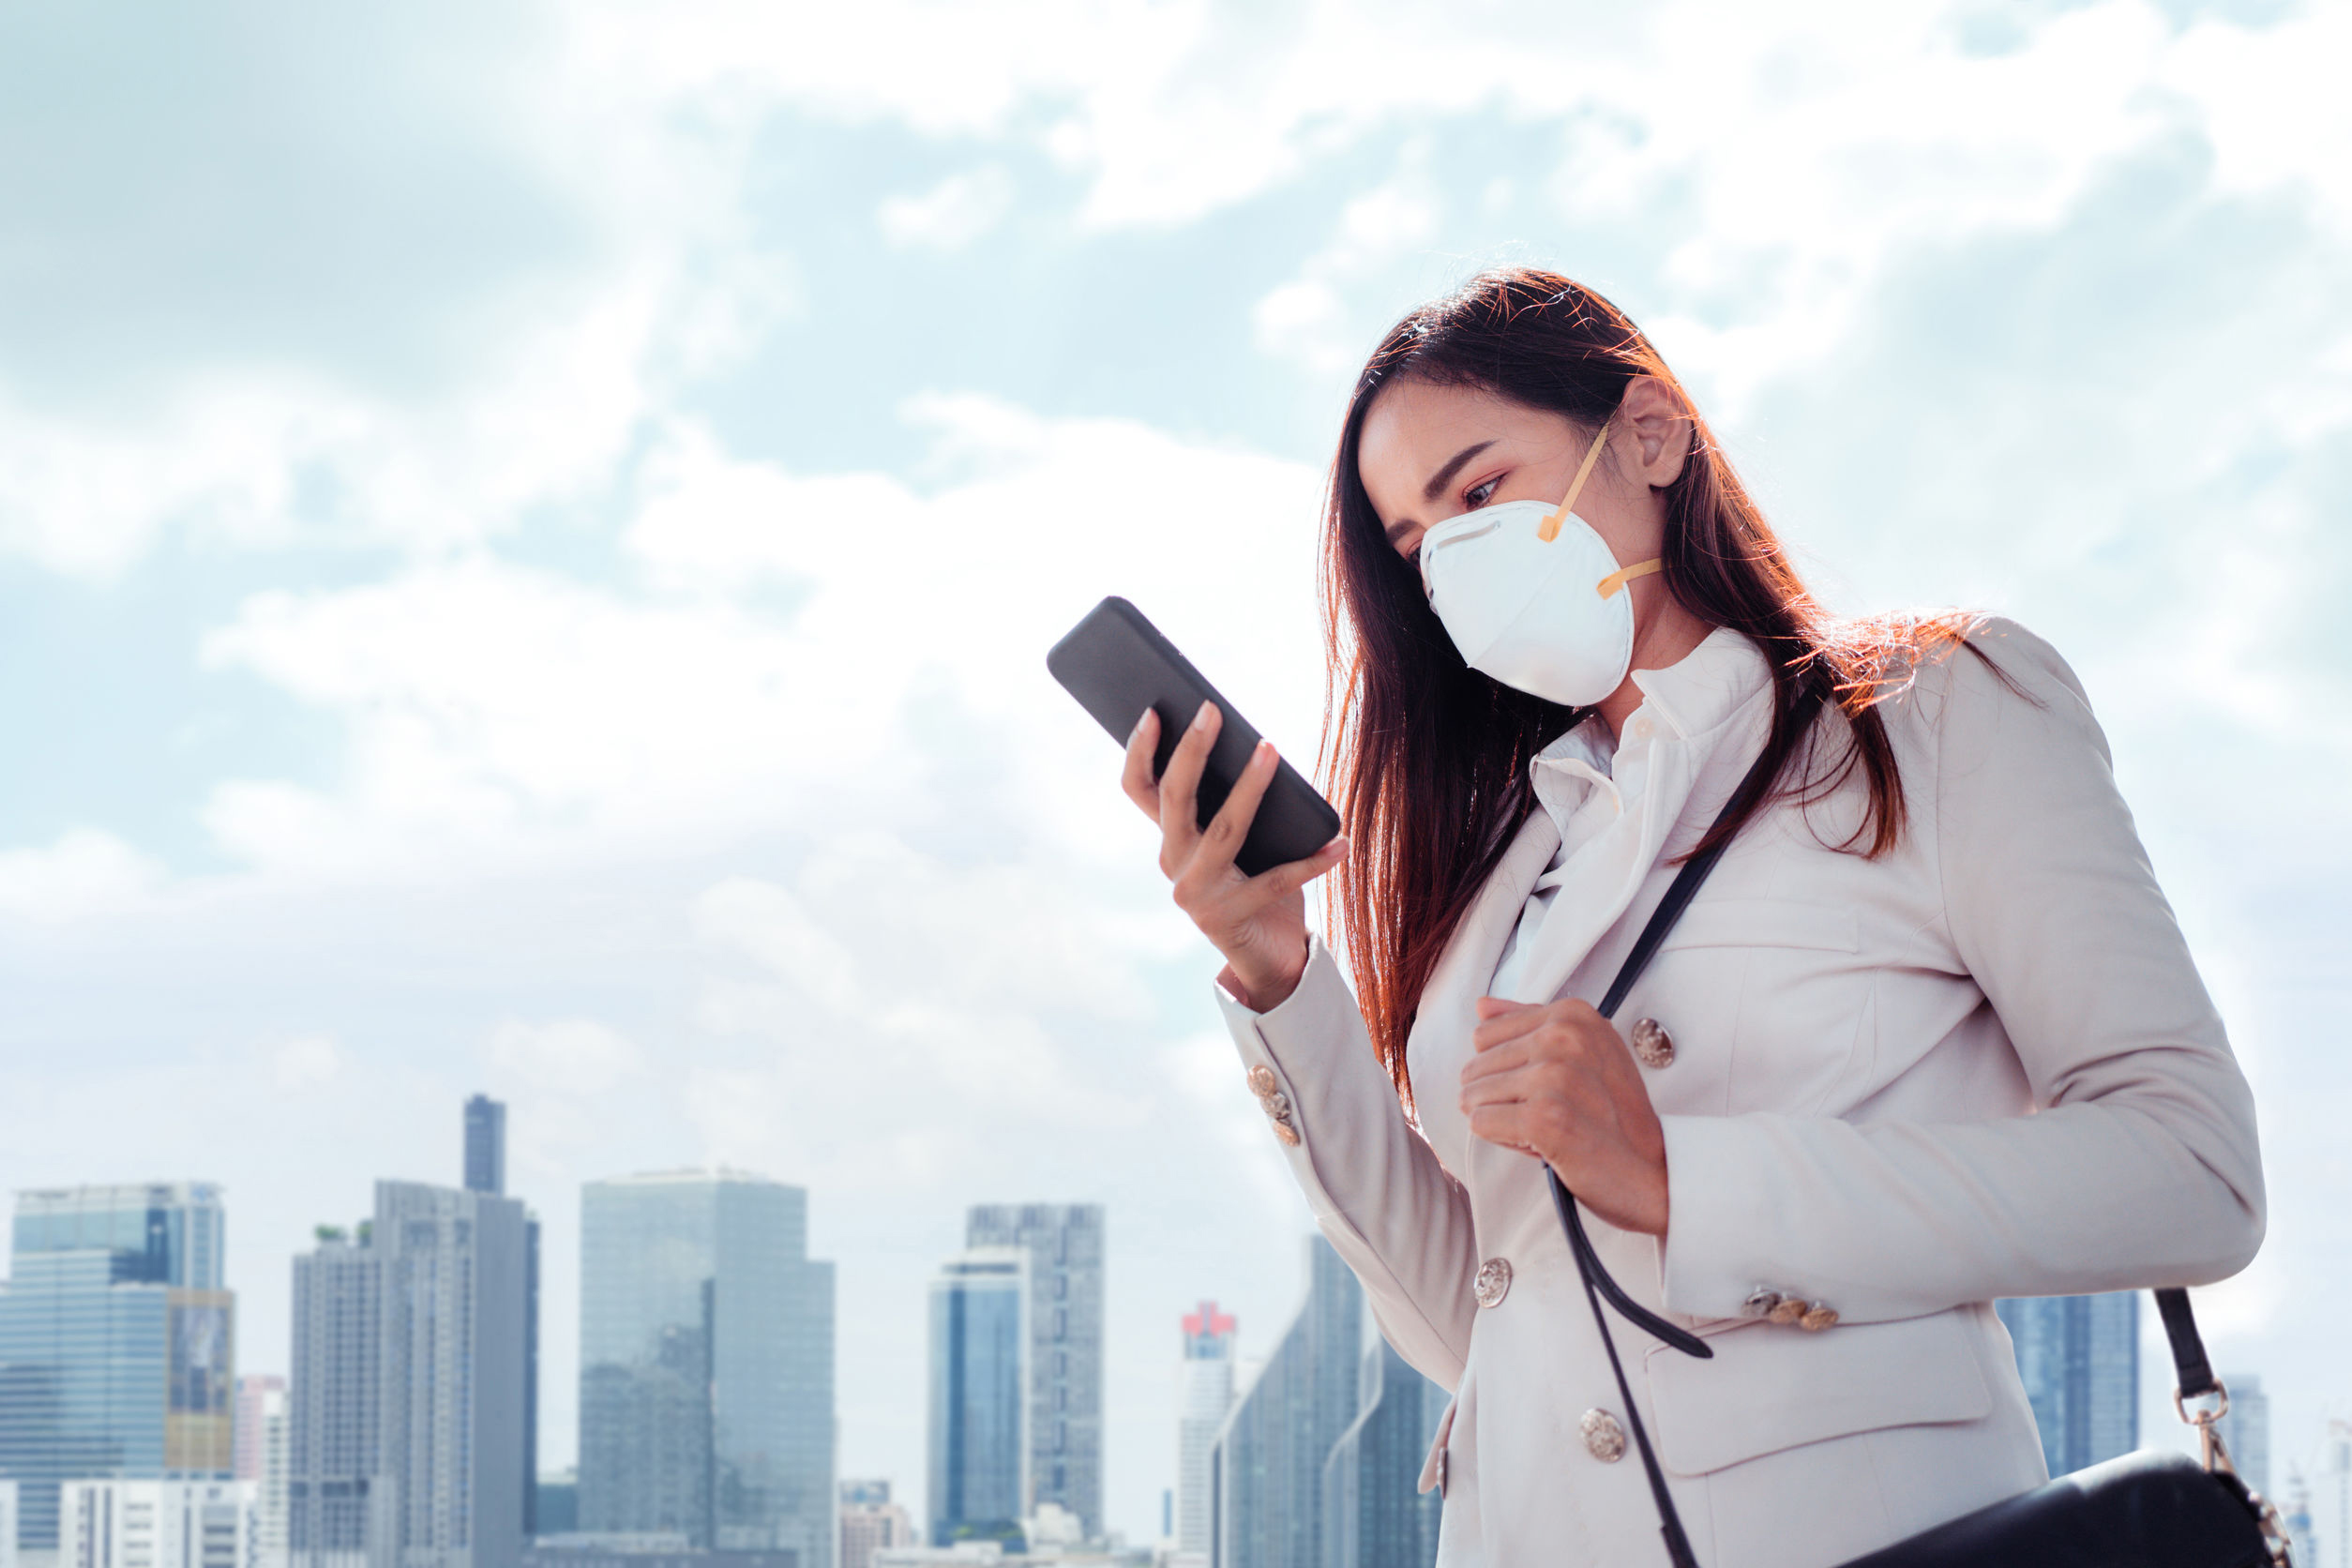 customer experience amid pandemic